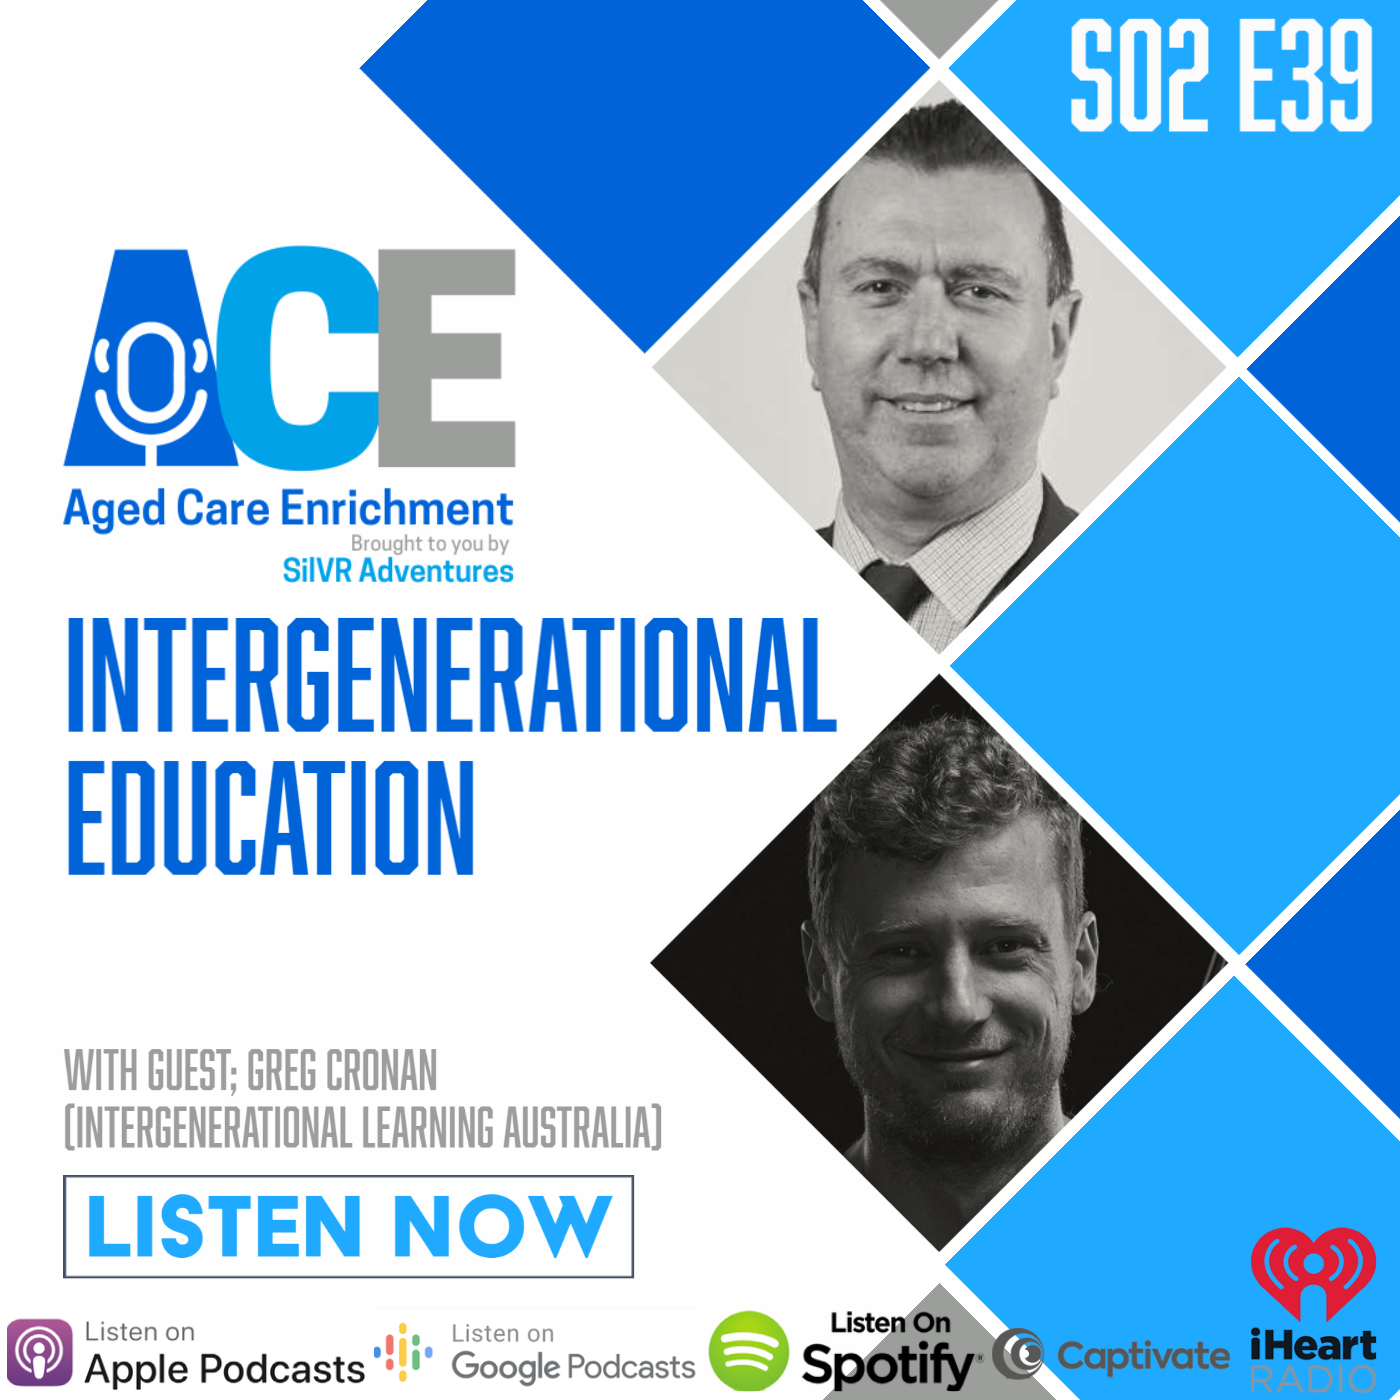 Artwork for podcast ACE - Aged Care Enrichment